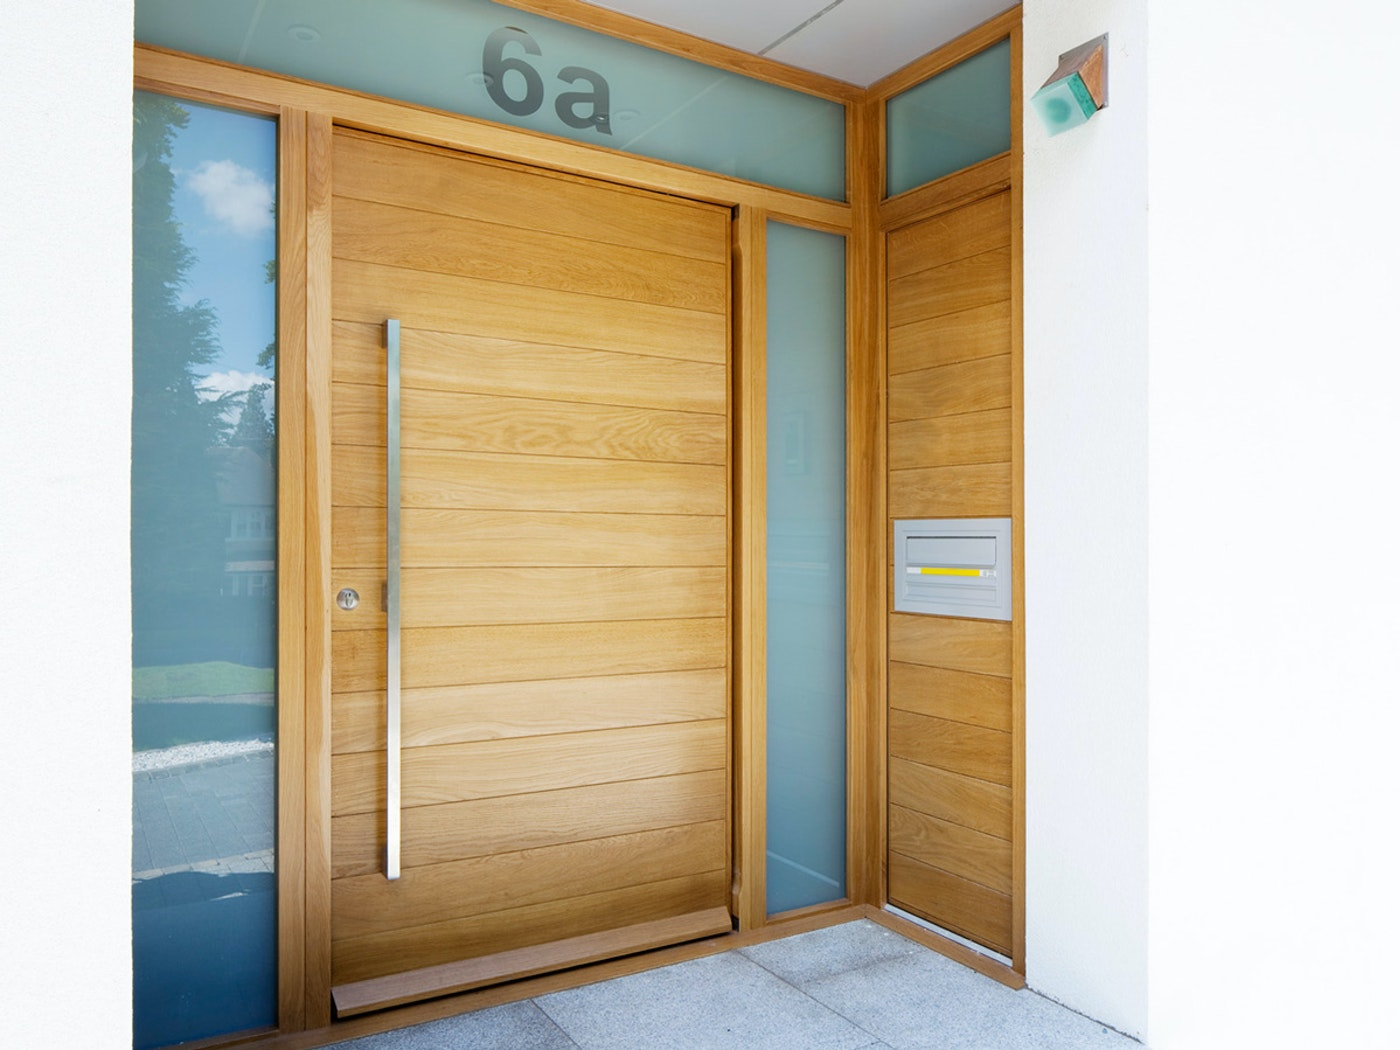 We can manufacture architectural glazing units in hardwood, but you may find it more cost effective to use aluminium framing